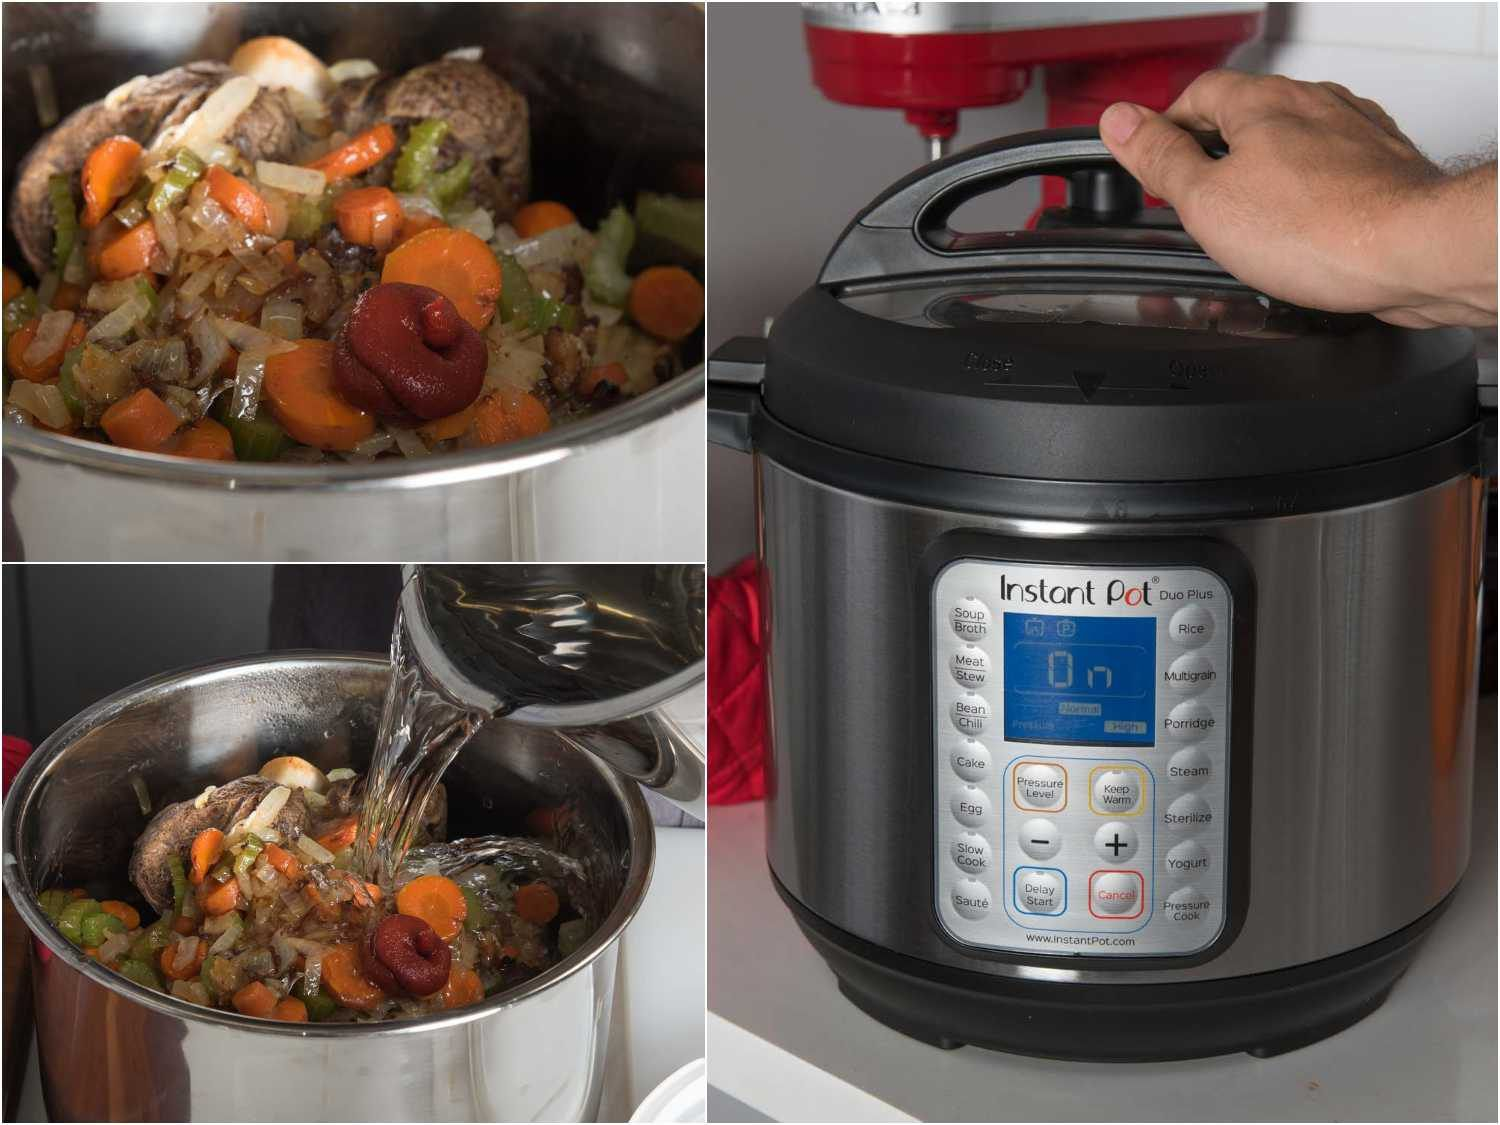 Cooking roasted beef bones and vegetables in the pressure cooker for beef stock